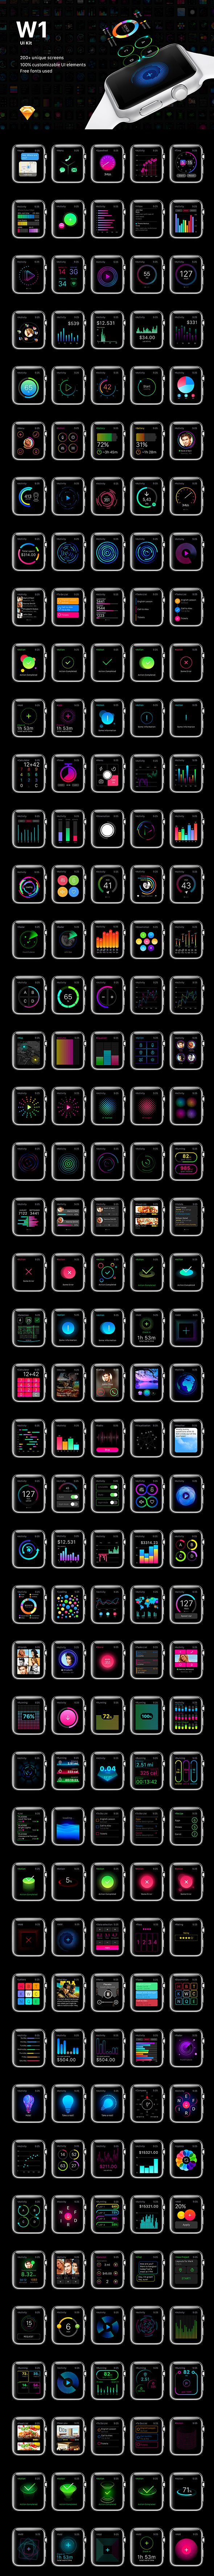 W1 UI Kit for watch Apps - 2